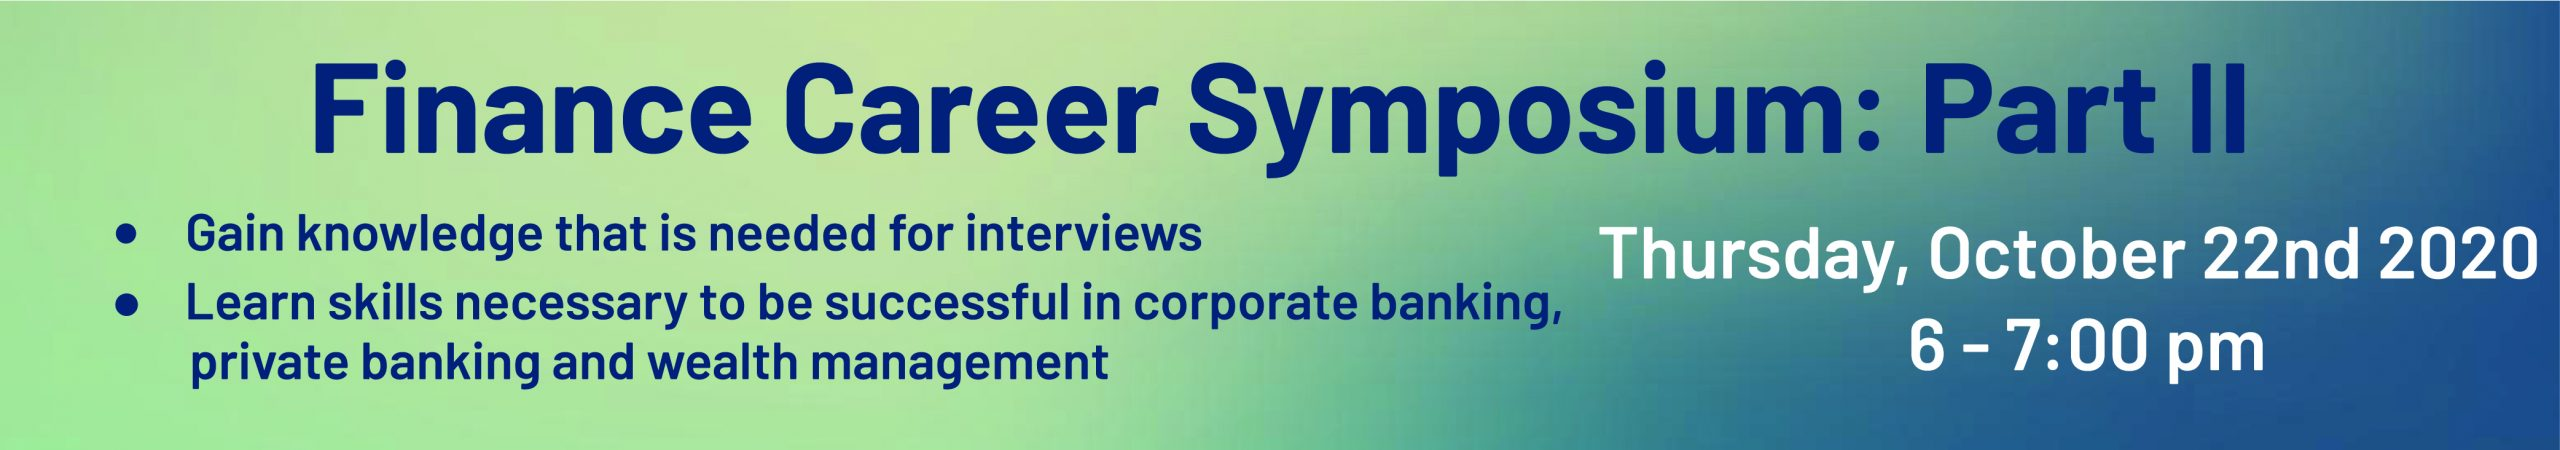 Finance Career Symposium: Part II